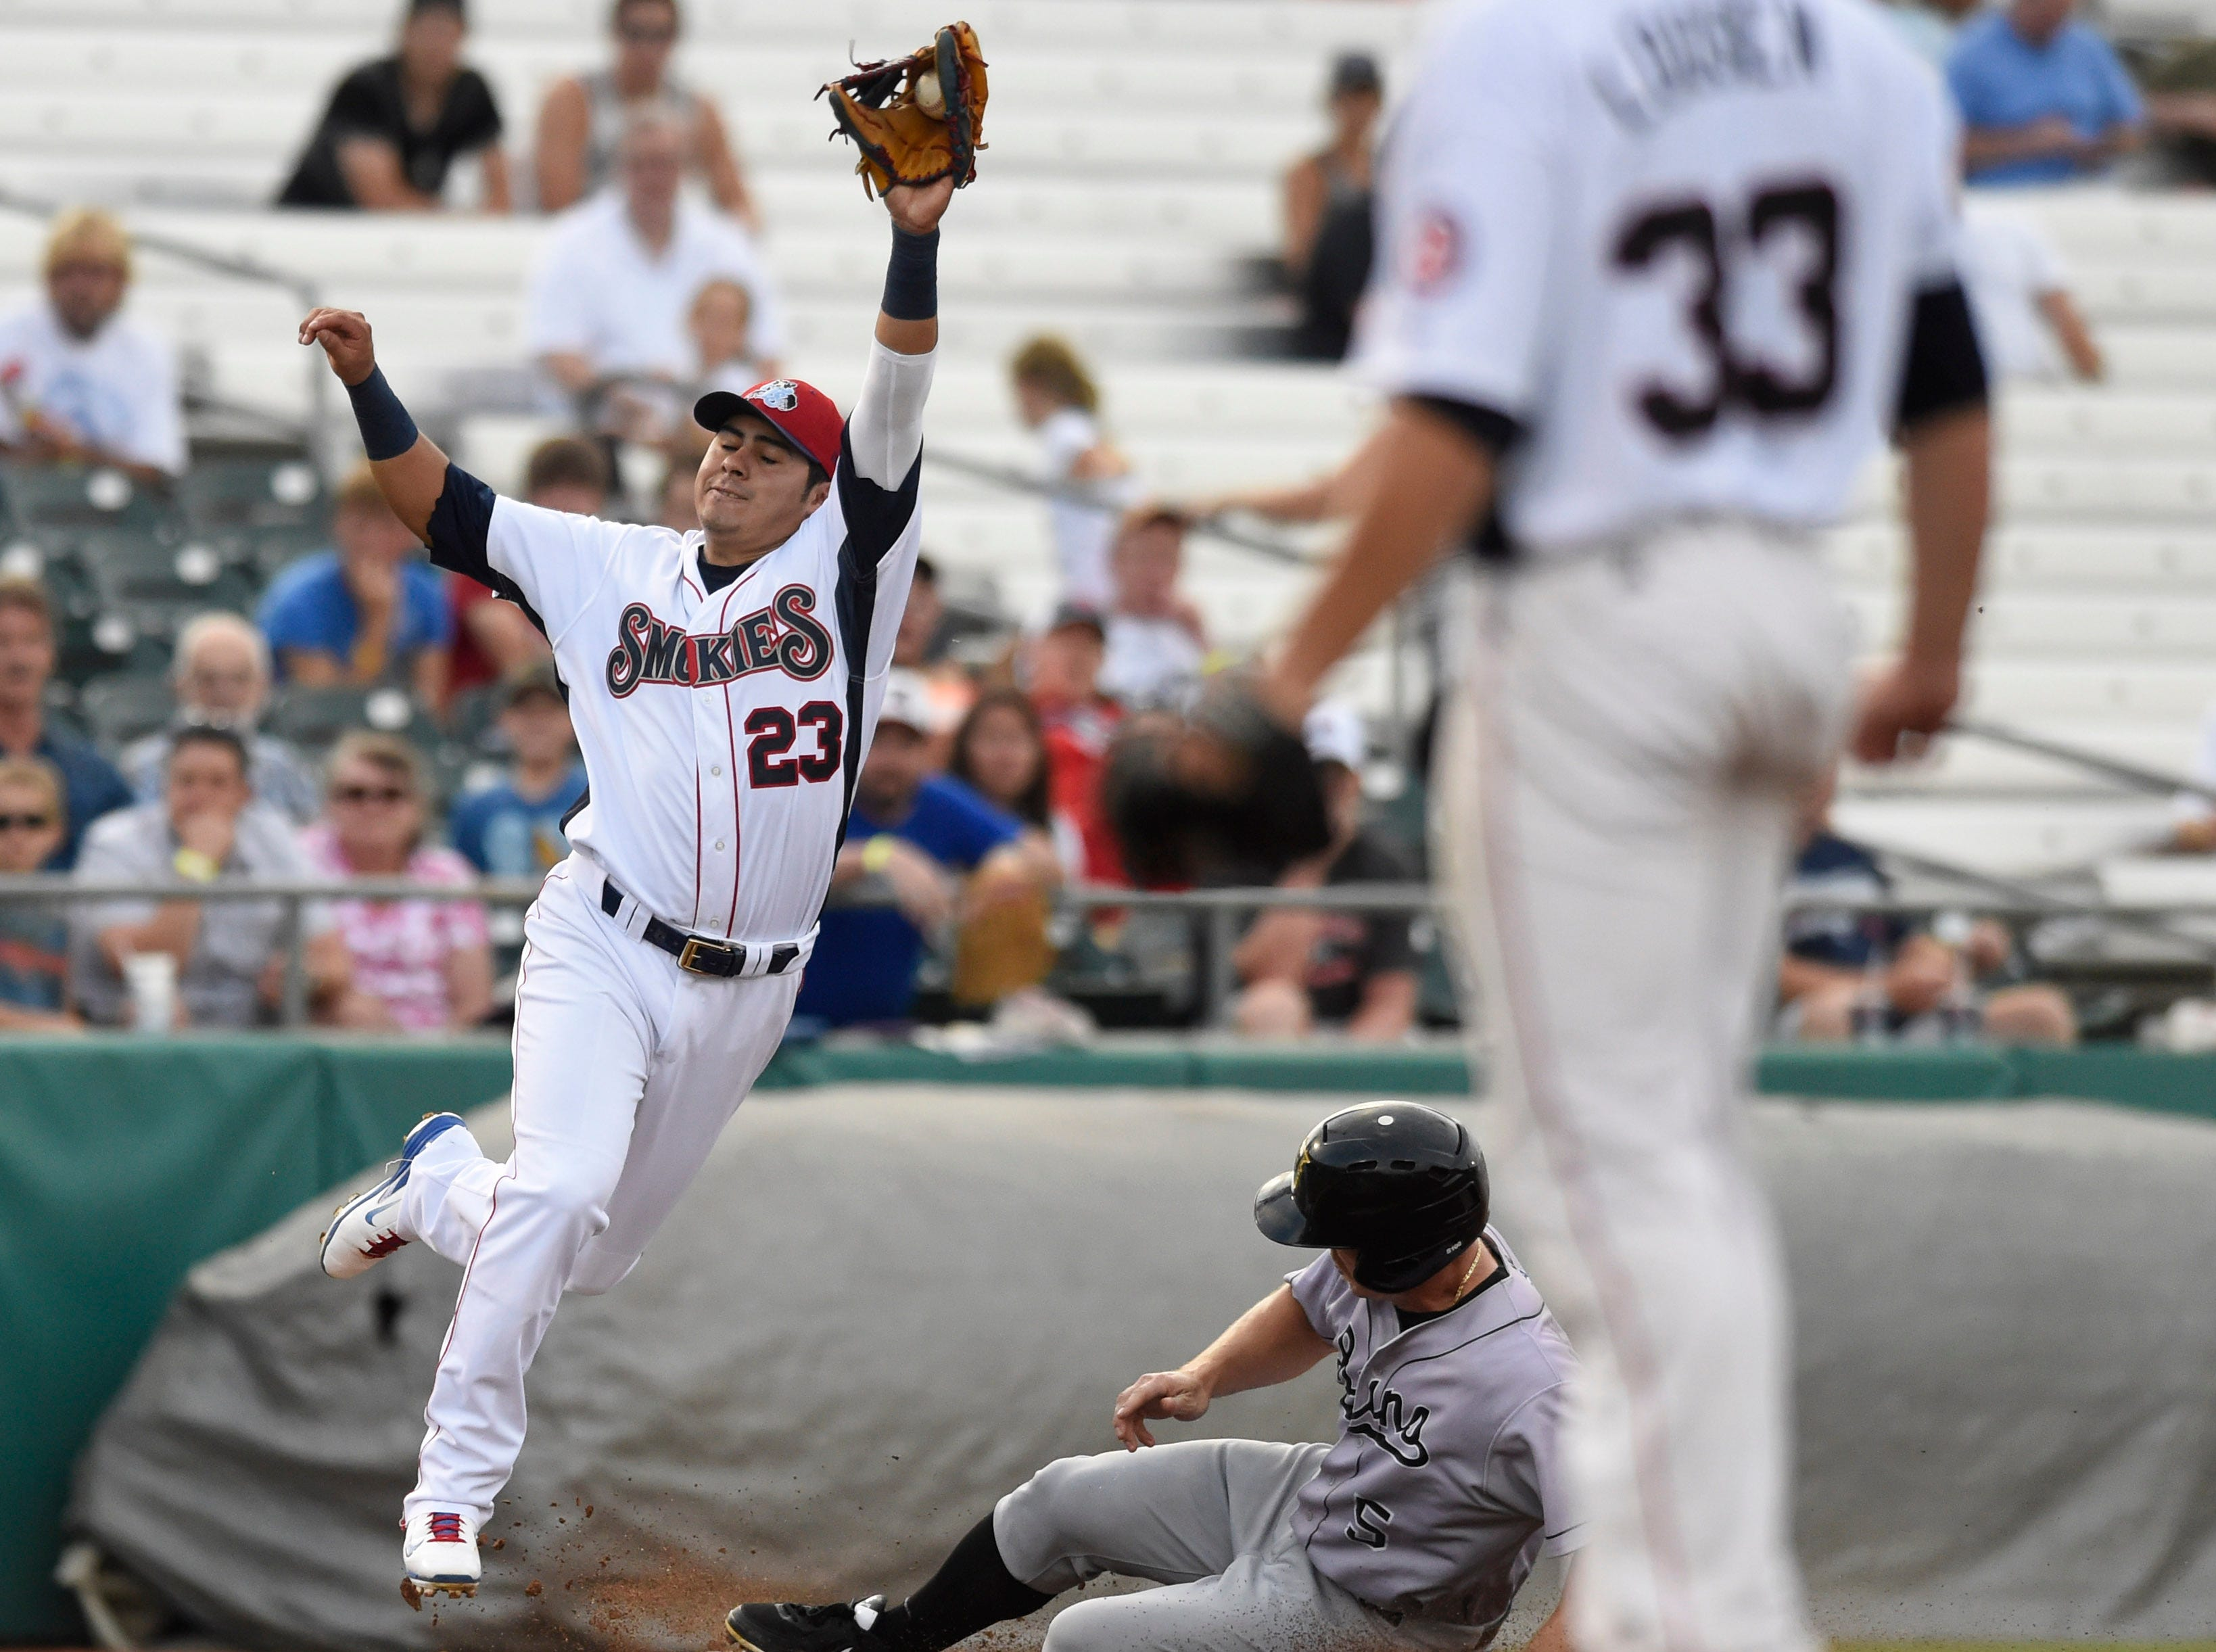 Jacksonville Suns' Joe Benson (5), center, steals third base as Tennessee Smokies third baseman Christian Villanueva (23), left, leaps for the catch during a baseball game at Smokies Park in Knoxville on Thursday, July 10, 2014.